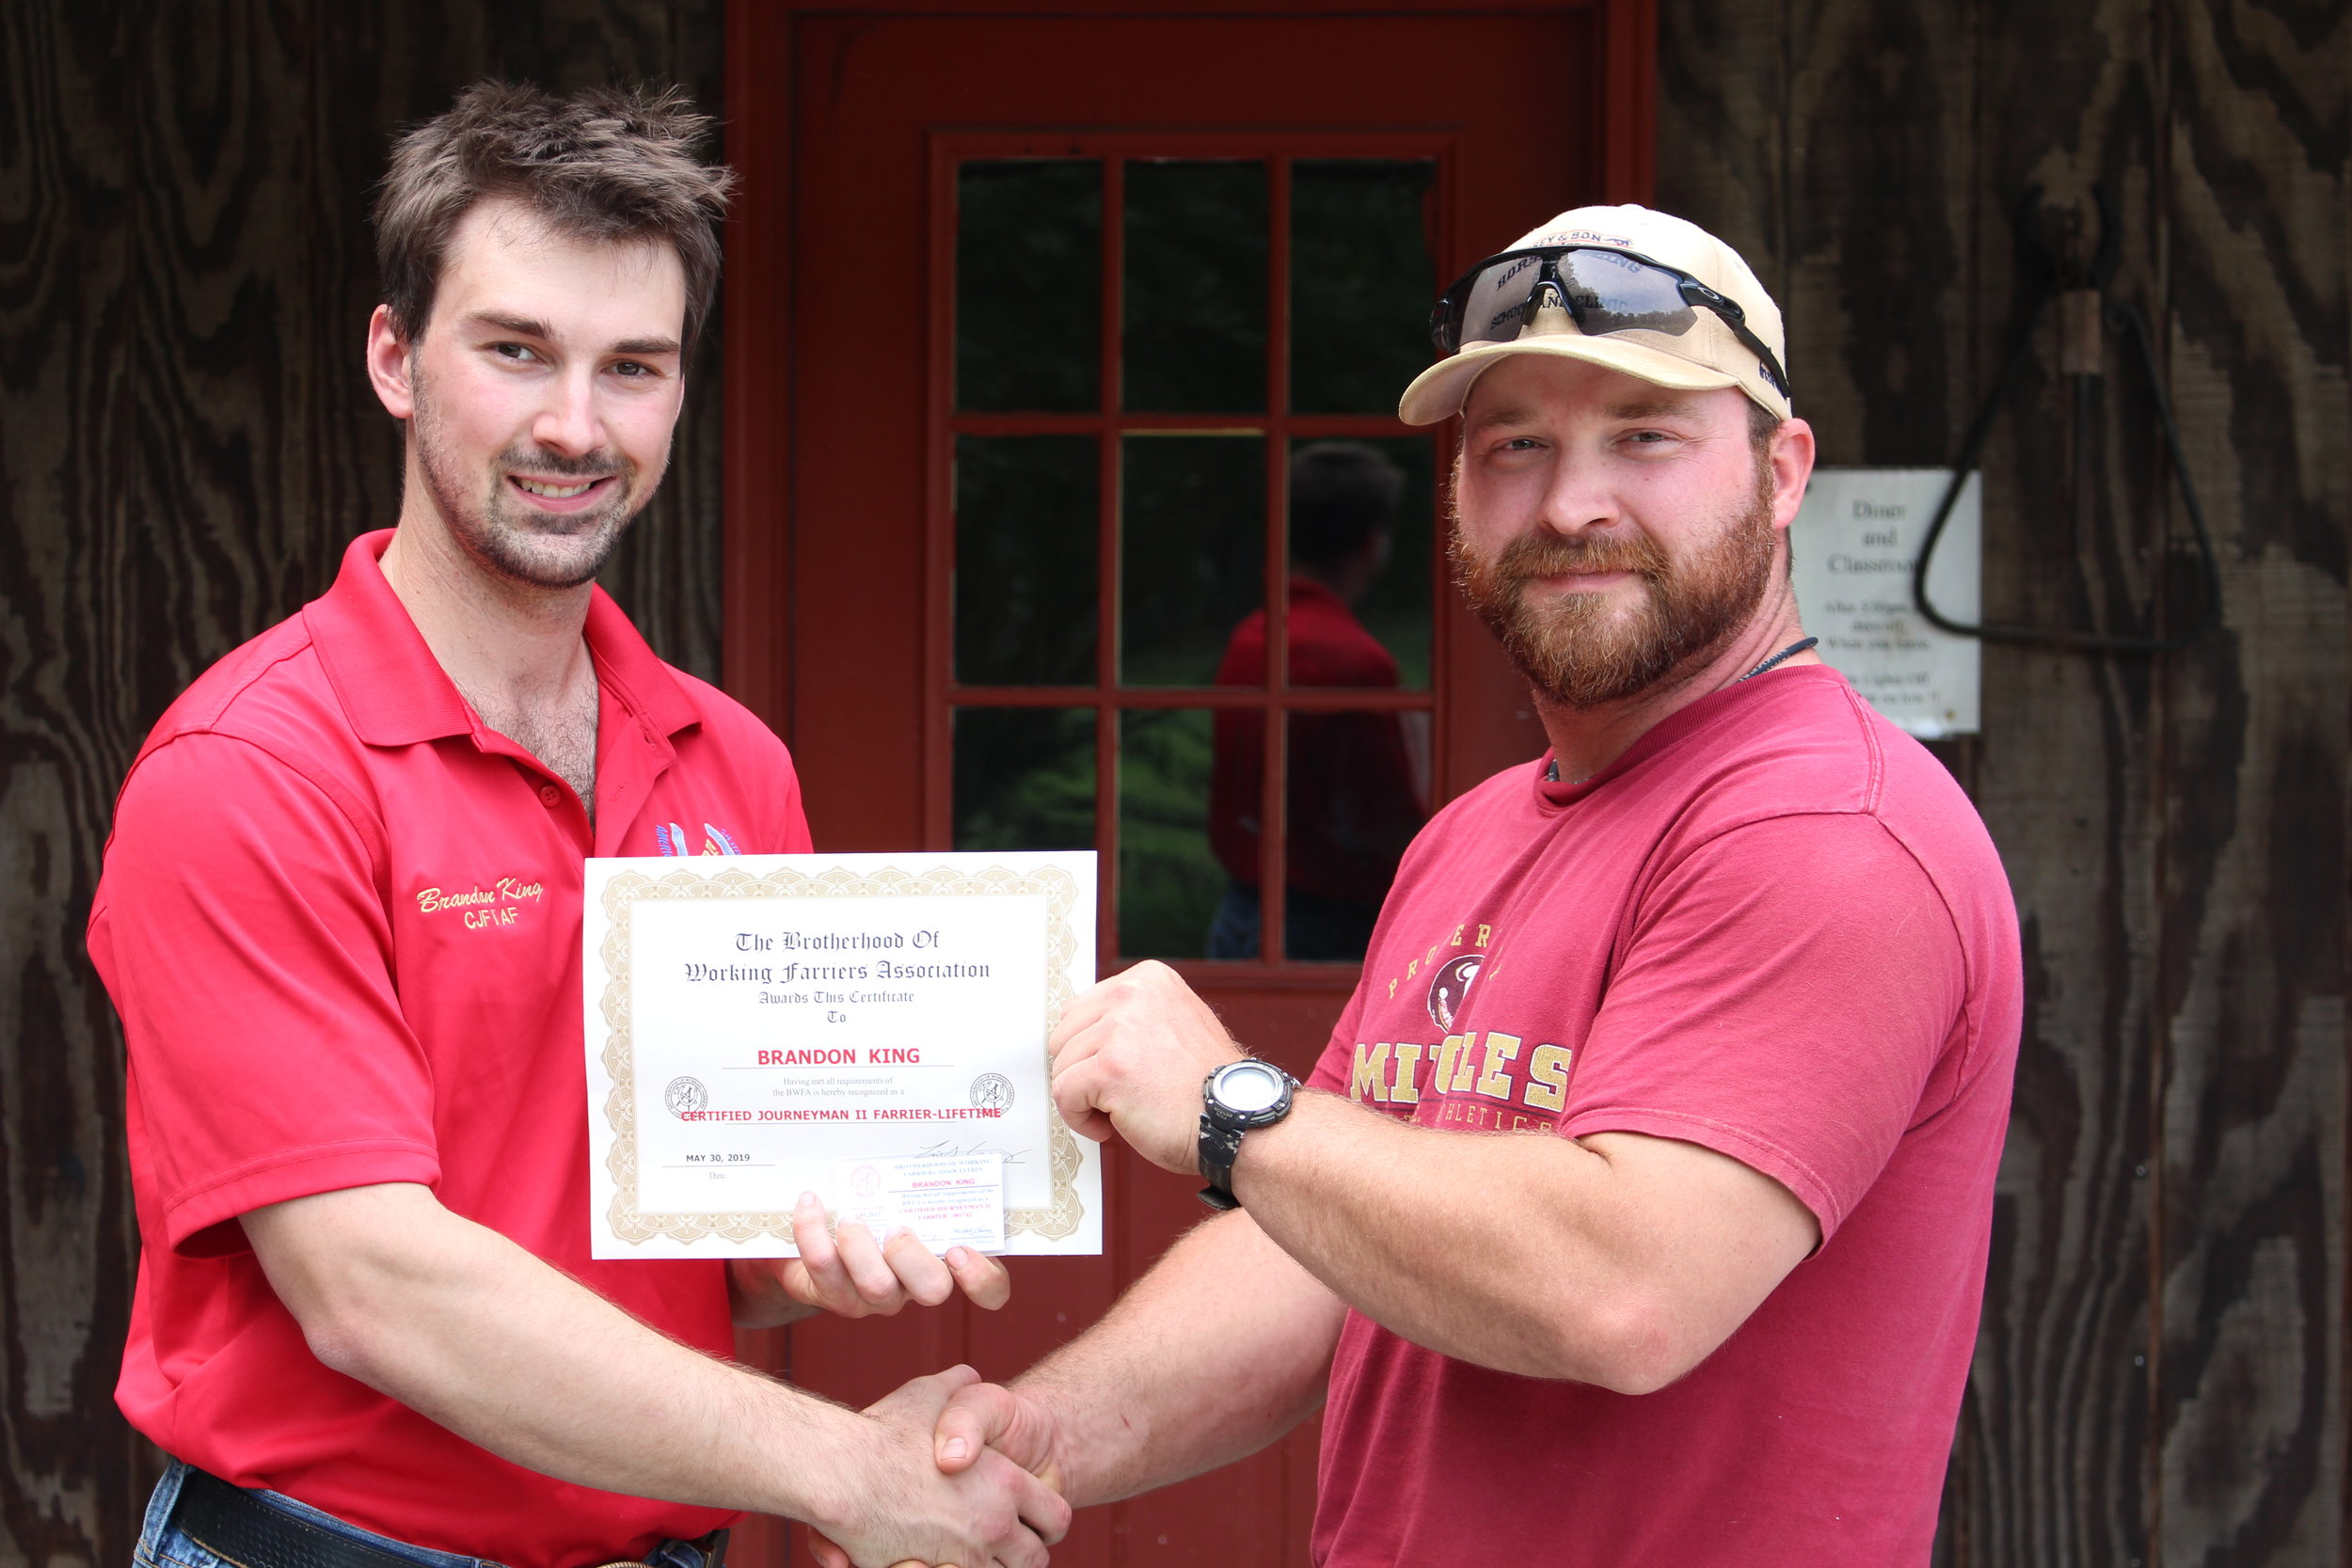 BWFA Member Brandon King of Ohio & 2015 farrier graduate returned to the BWFA Headquarters to upgrade his Farrier Certification to the Journeyman II Level. 5.30.2019.JPG